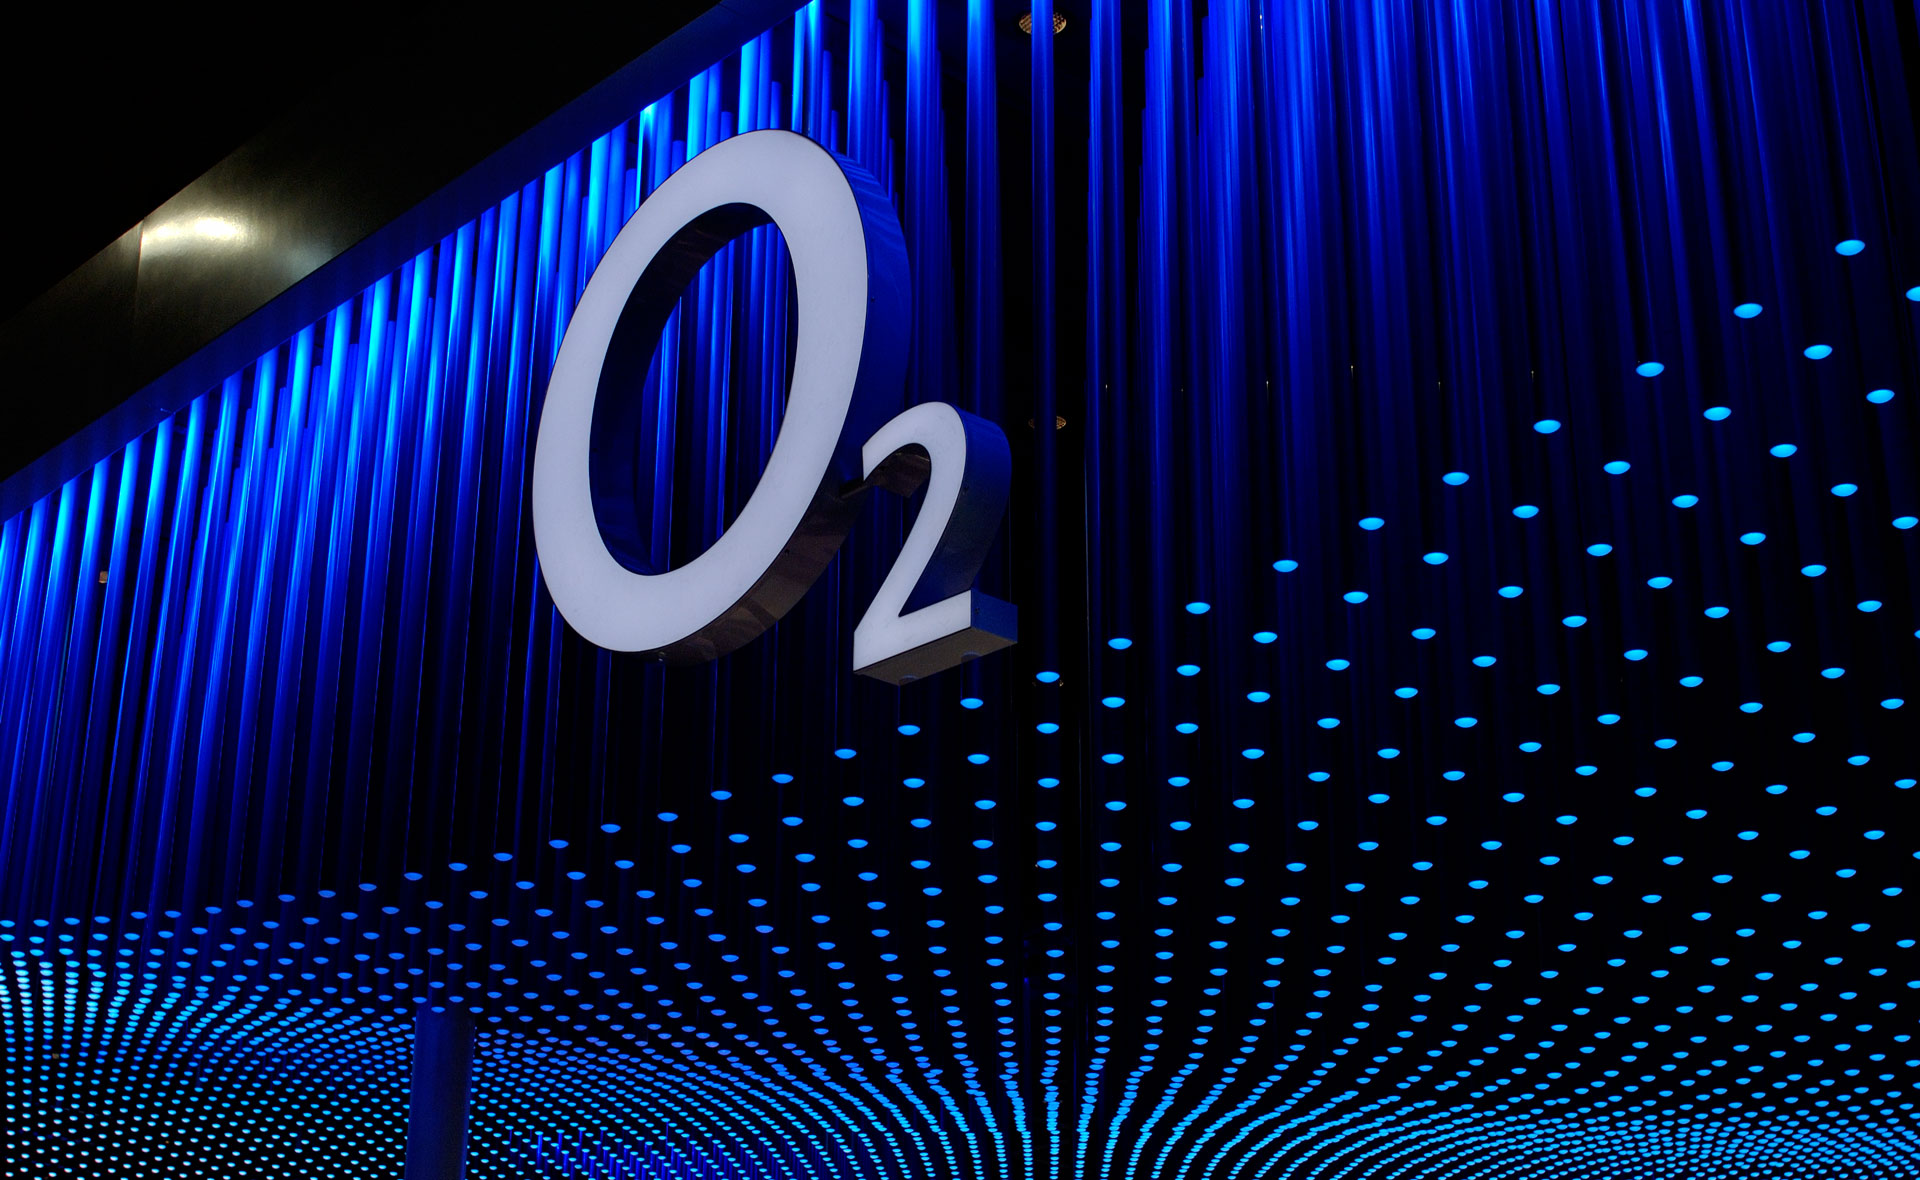 The o2 logo hangs in front of the cloud ceiling that extends over the entire exhibition stand.